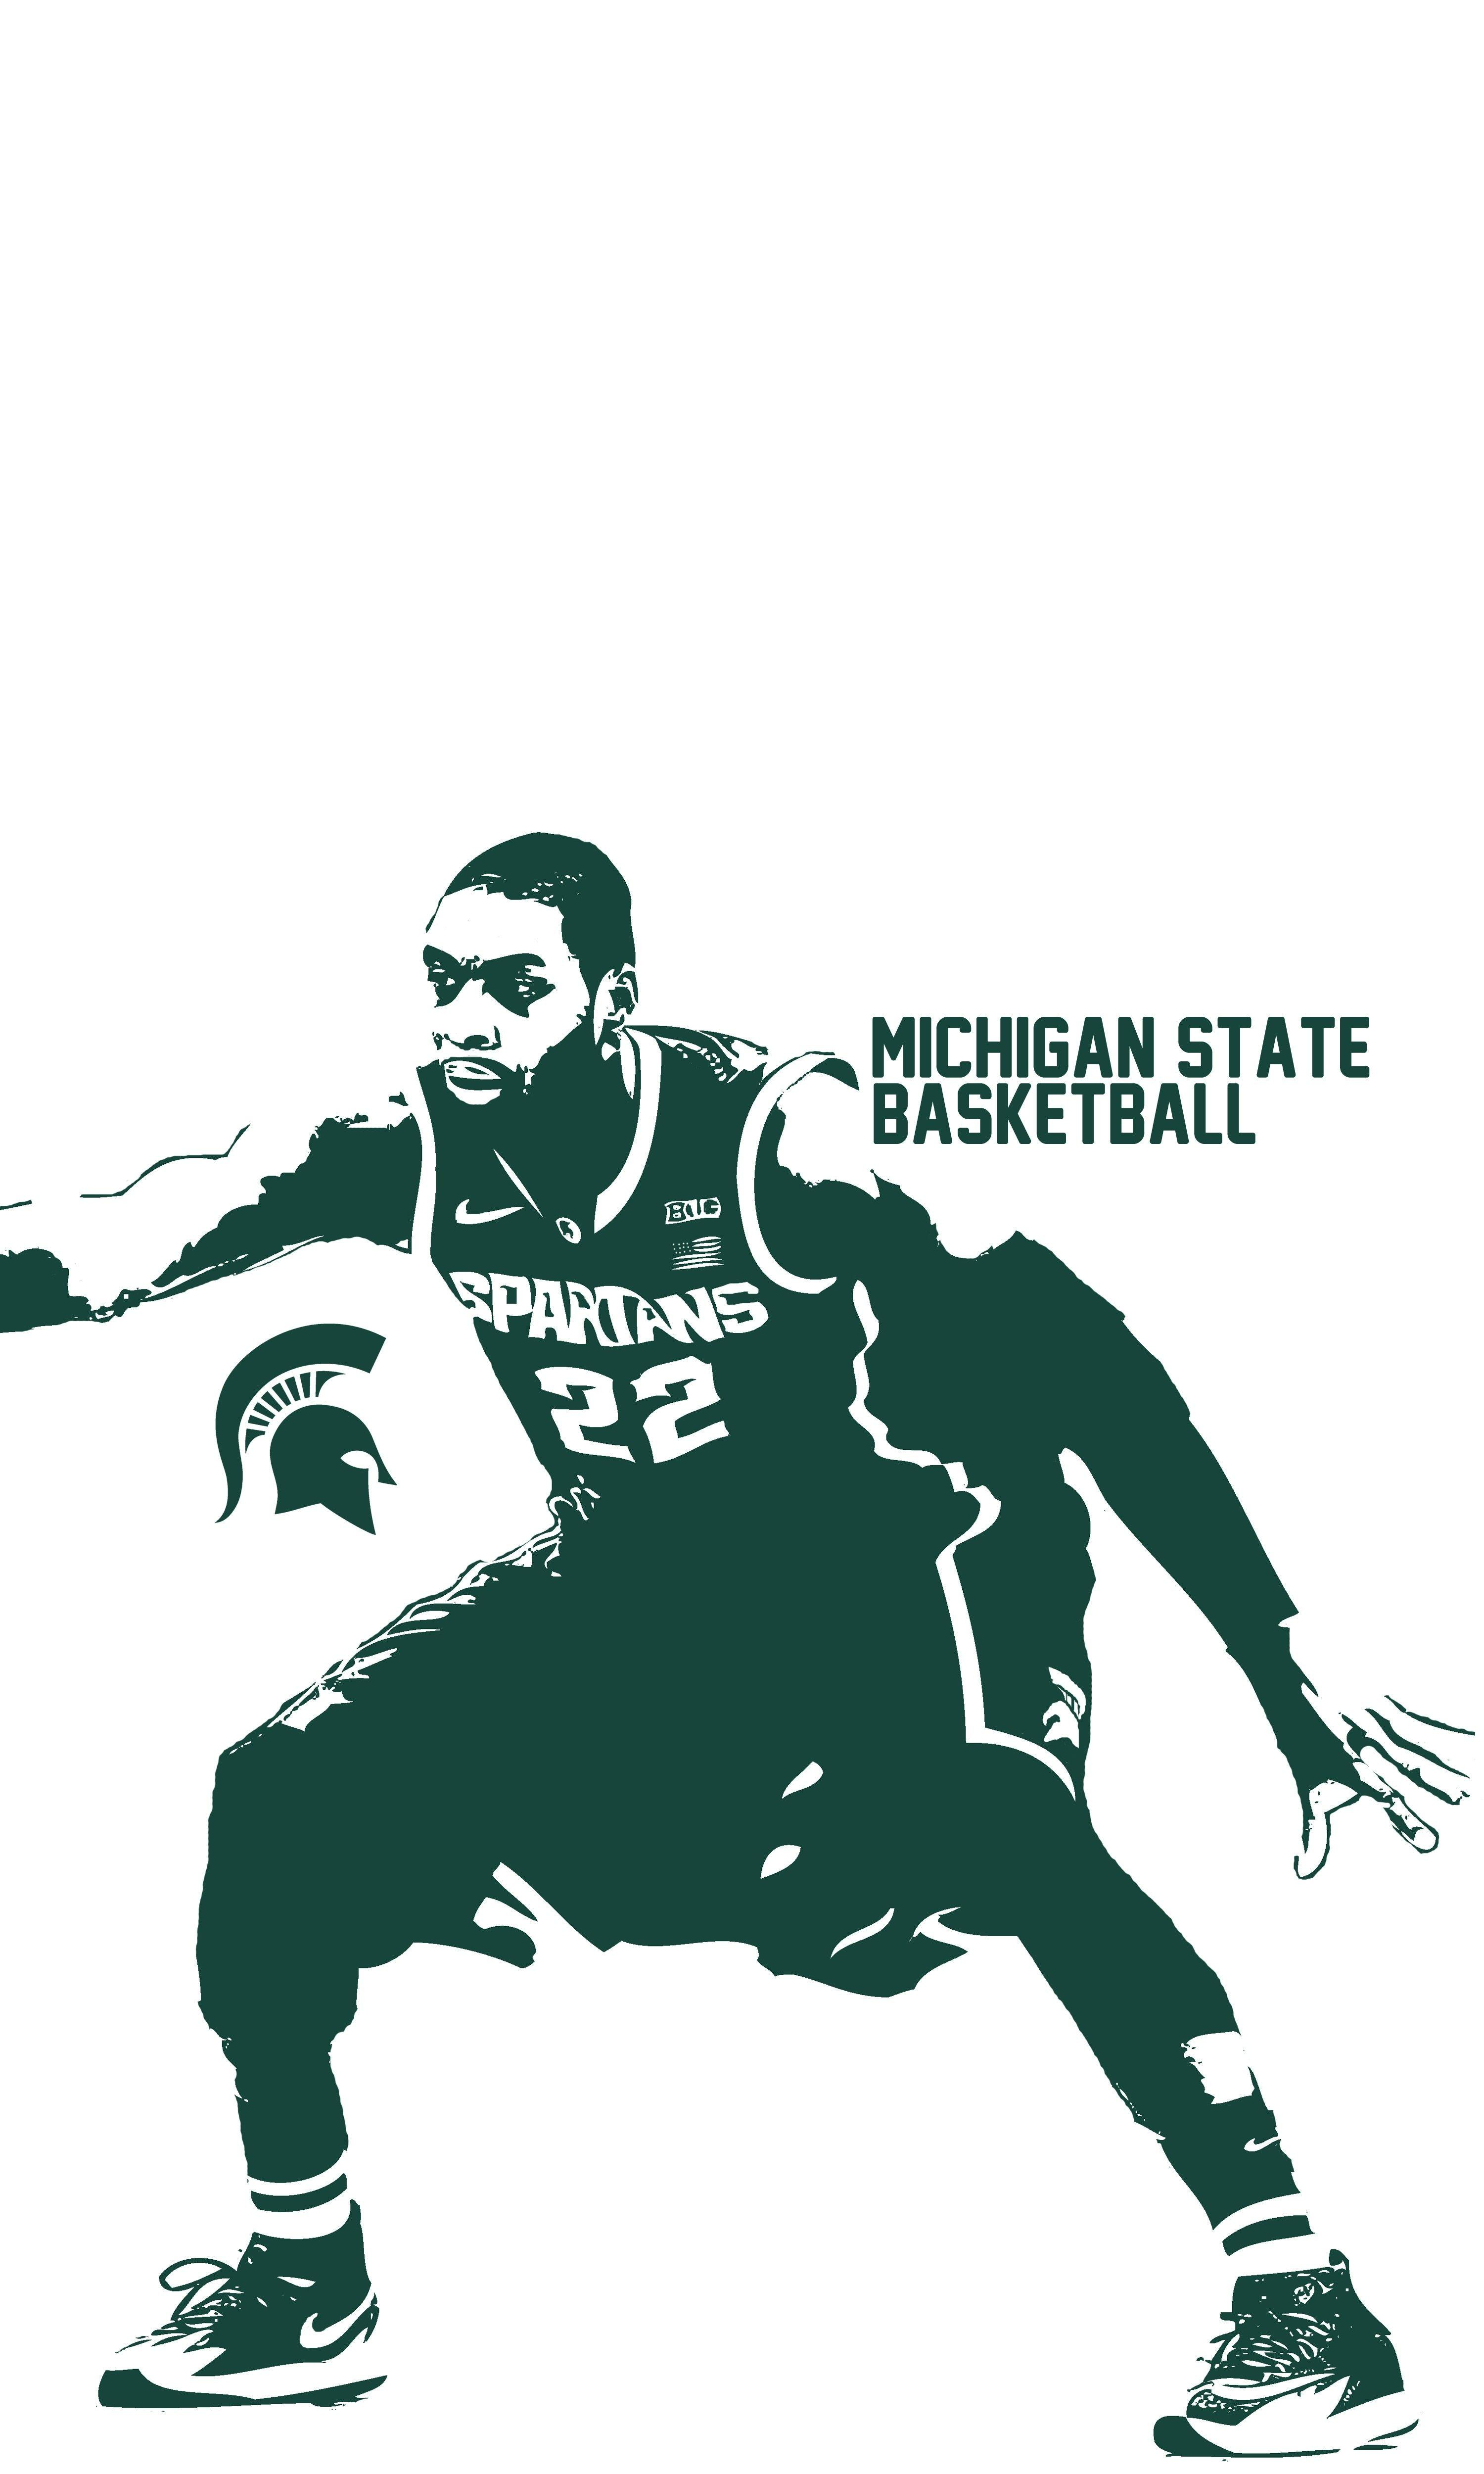 Michigan State Basketball Wallpapers Wallpaper Cave